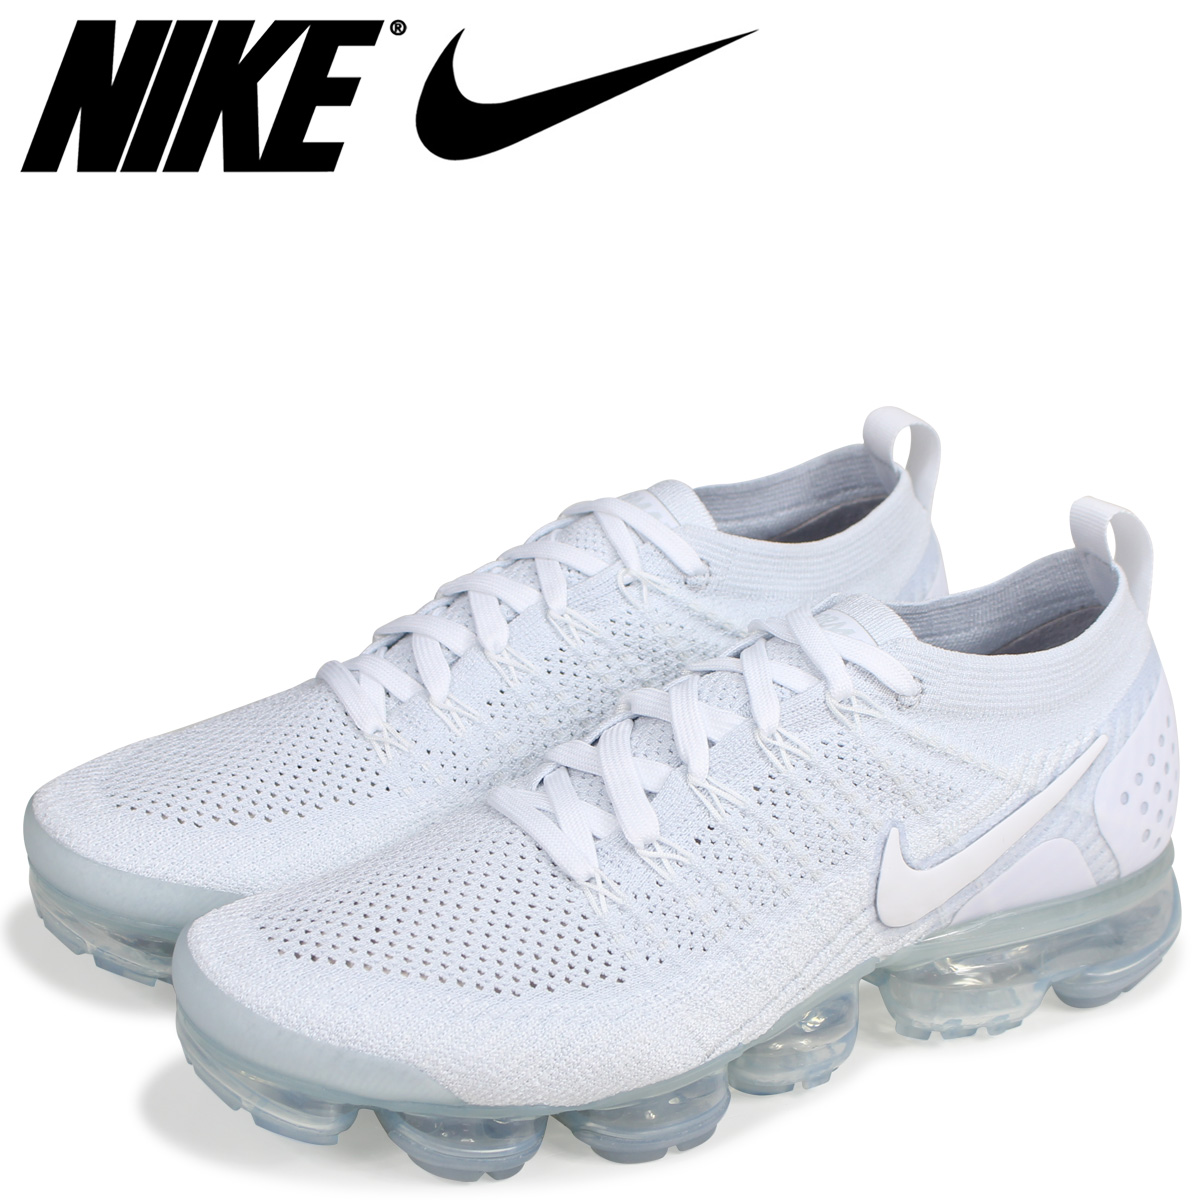 innovative design 6b7fc 754d0 NIKE Nike air vapor max fried food knit 2 sneakers men AIR VAPORMAX FLYKNIT  2 942,842 ...